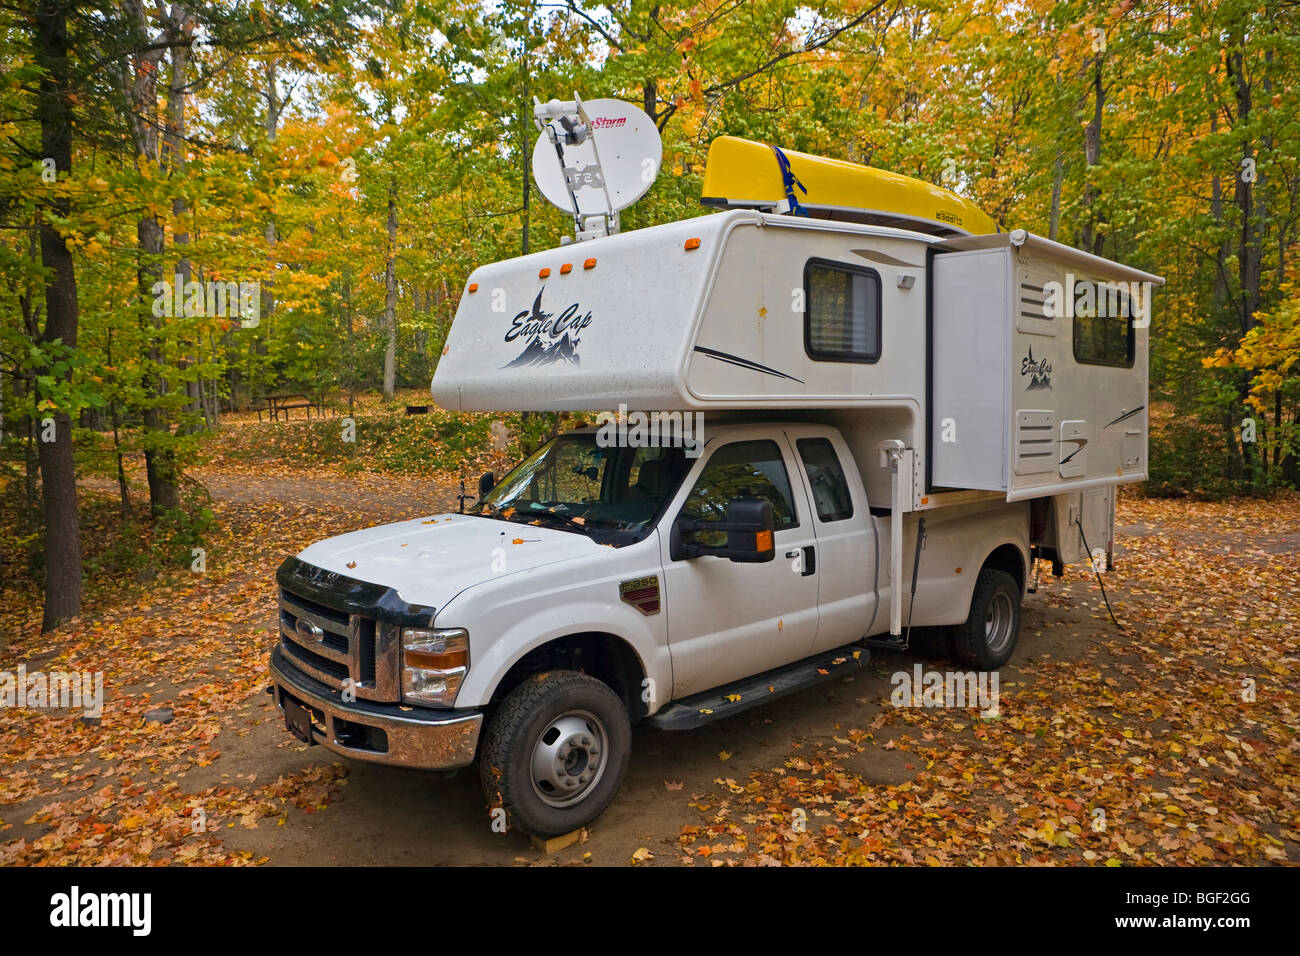 Hicker Camper at Kettle Point Campground in Restoule Provincial Park, Ontario, Canada. - Stock Image